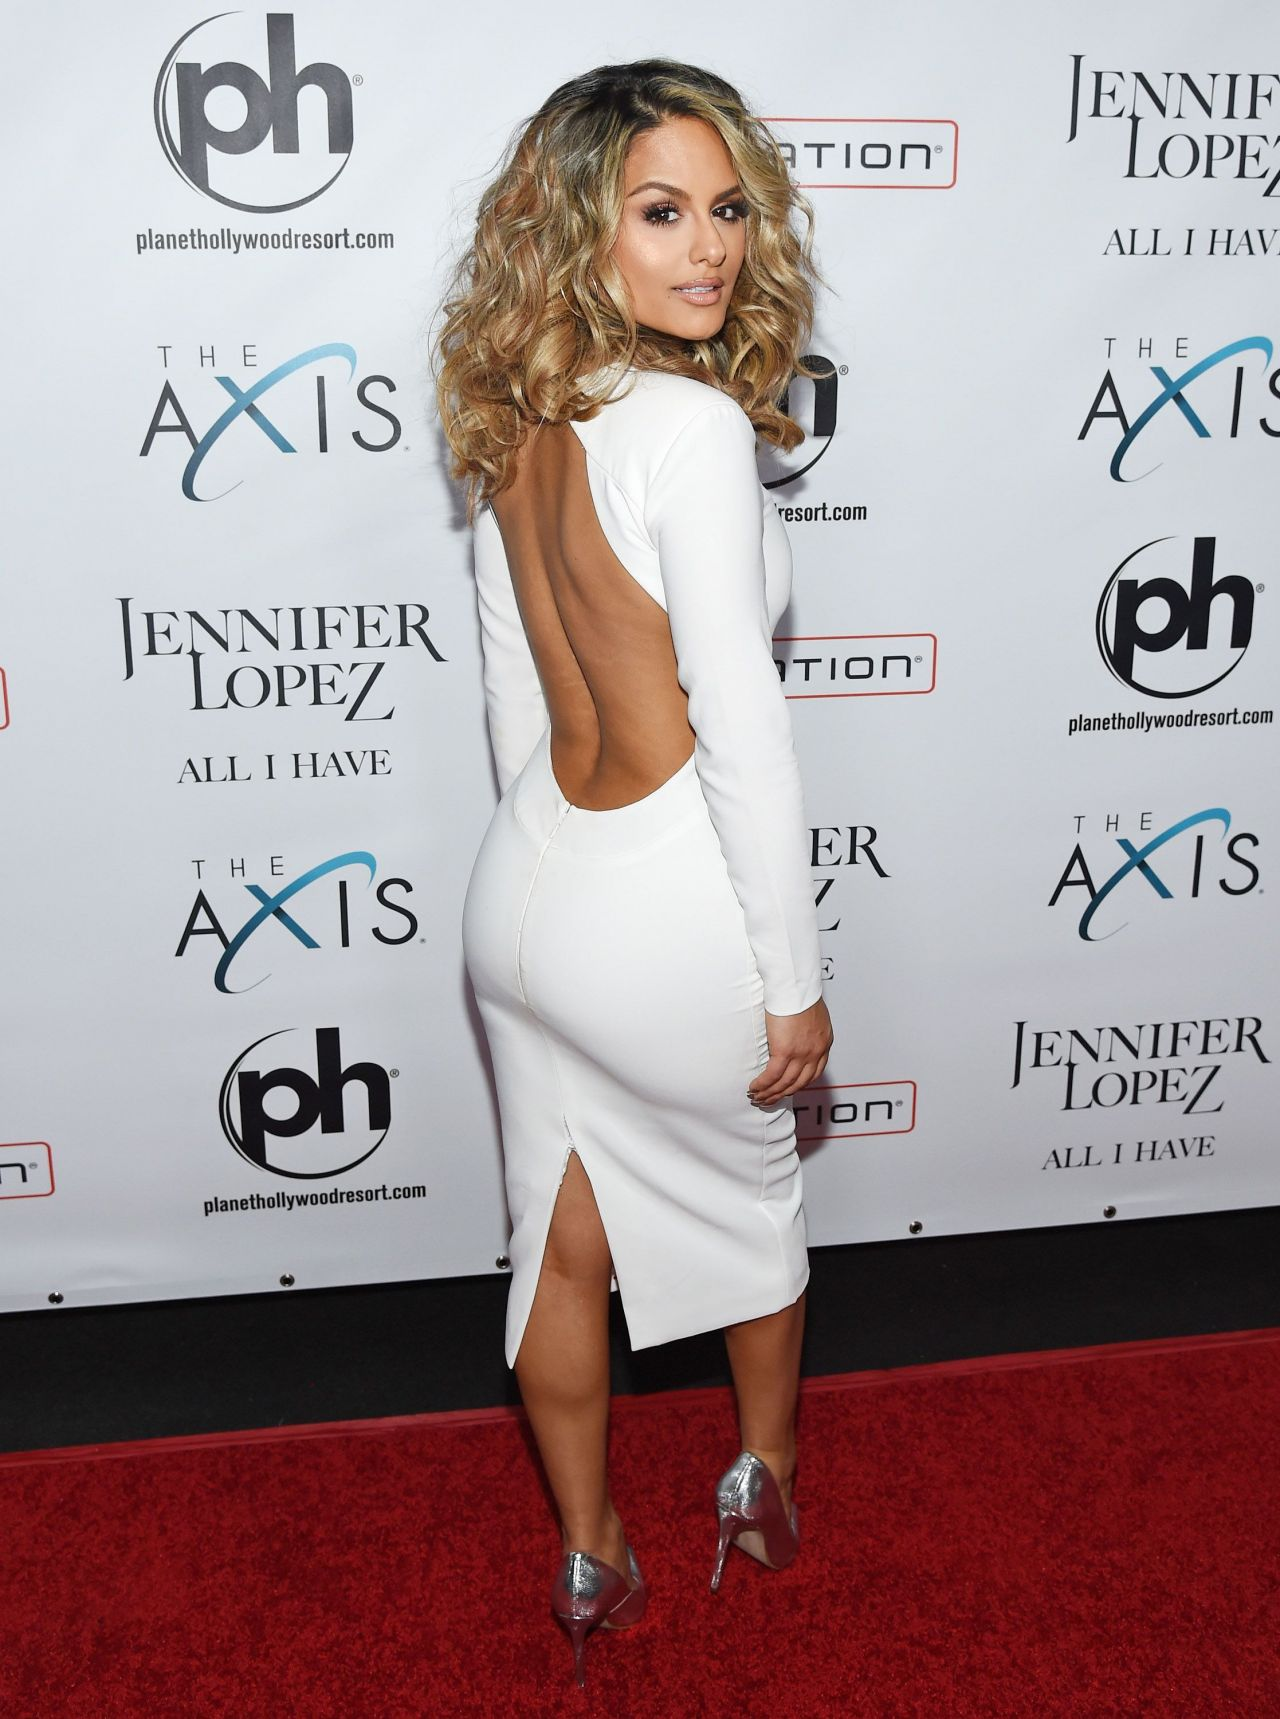 pia-toscano-jennifer-lopez-all-i-have-residency-launch-in-las-vegas-january-20-2016-2